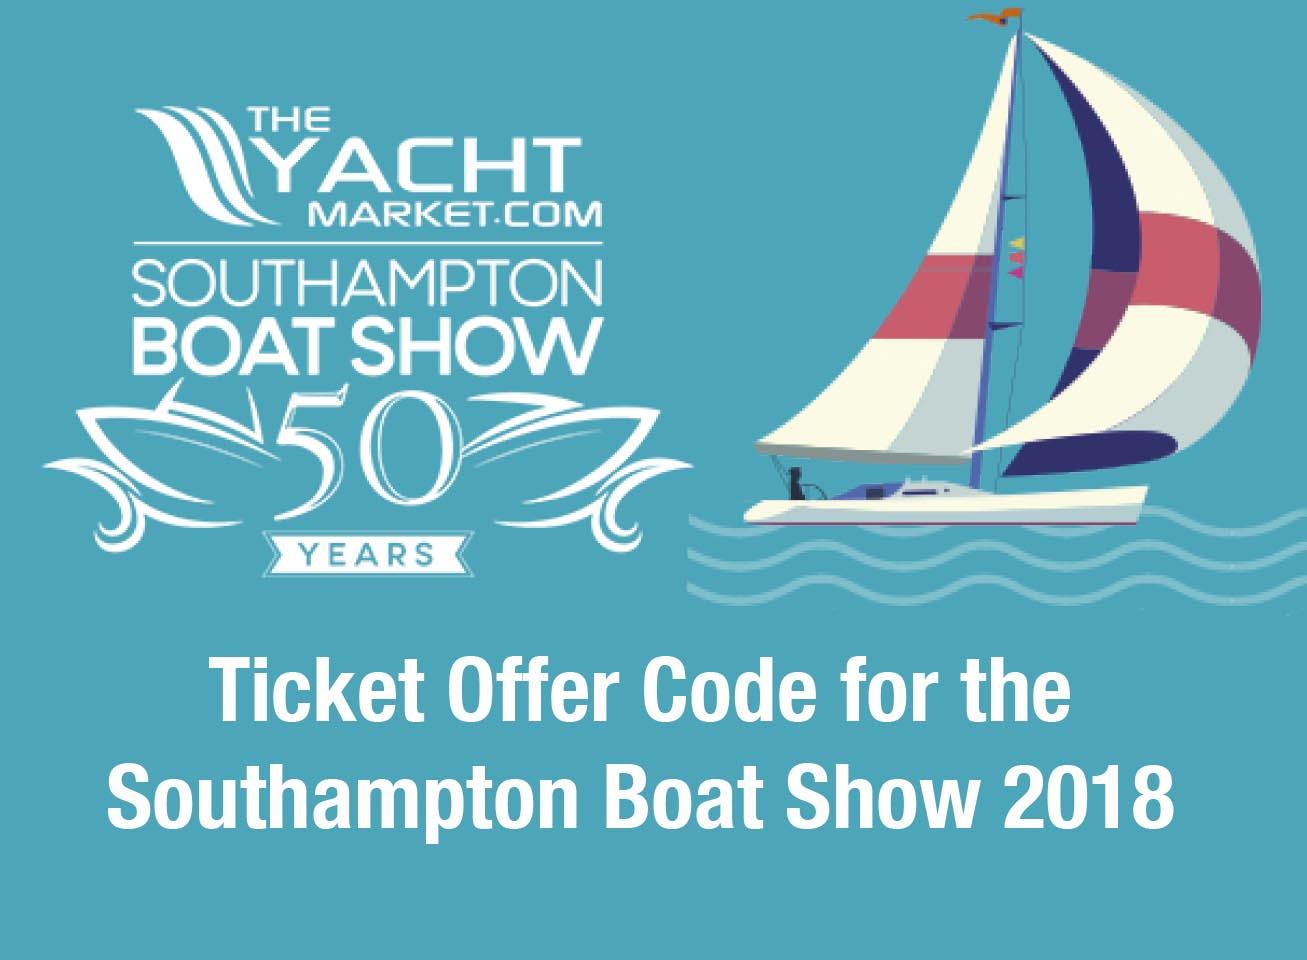 Ticket Offer Code for the  Southampton Boat Show 2018